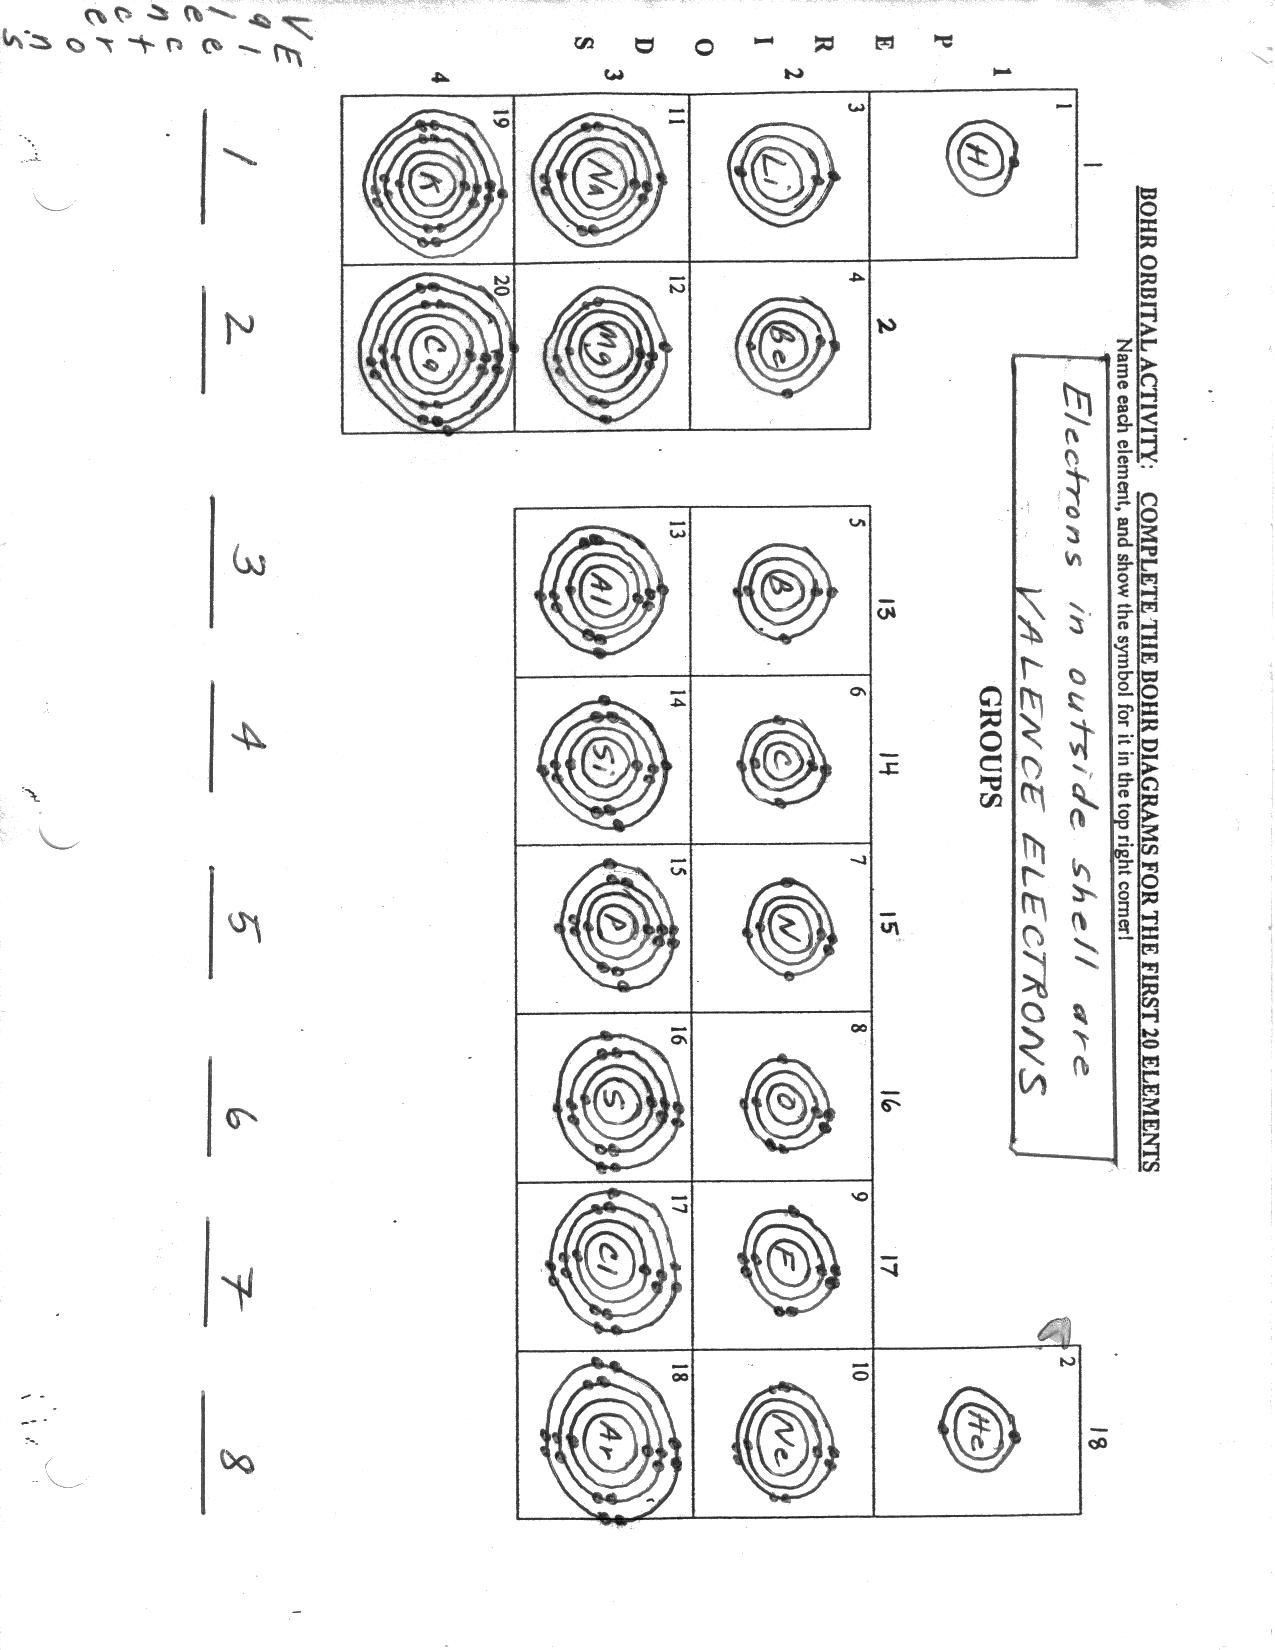 Lewis Dot Diagrams Worksheet Answers Blank Bohr Model Worksheet Blank Fill In For First 20 In 2020 Bohr Model Worksheets Word Problem Worksheets